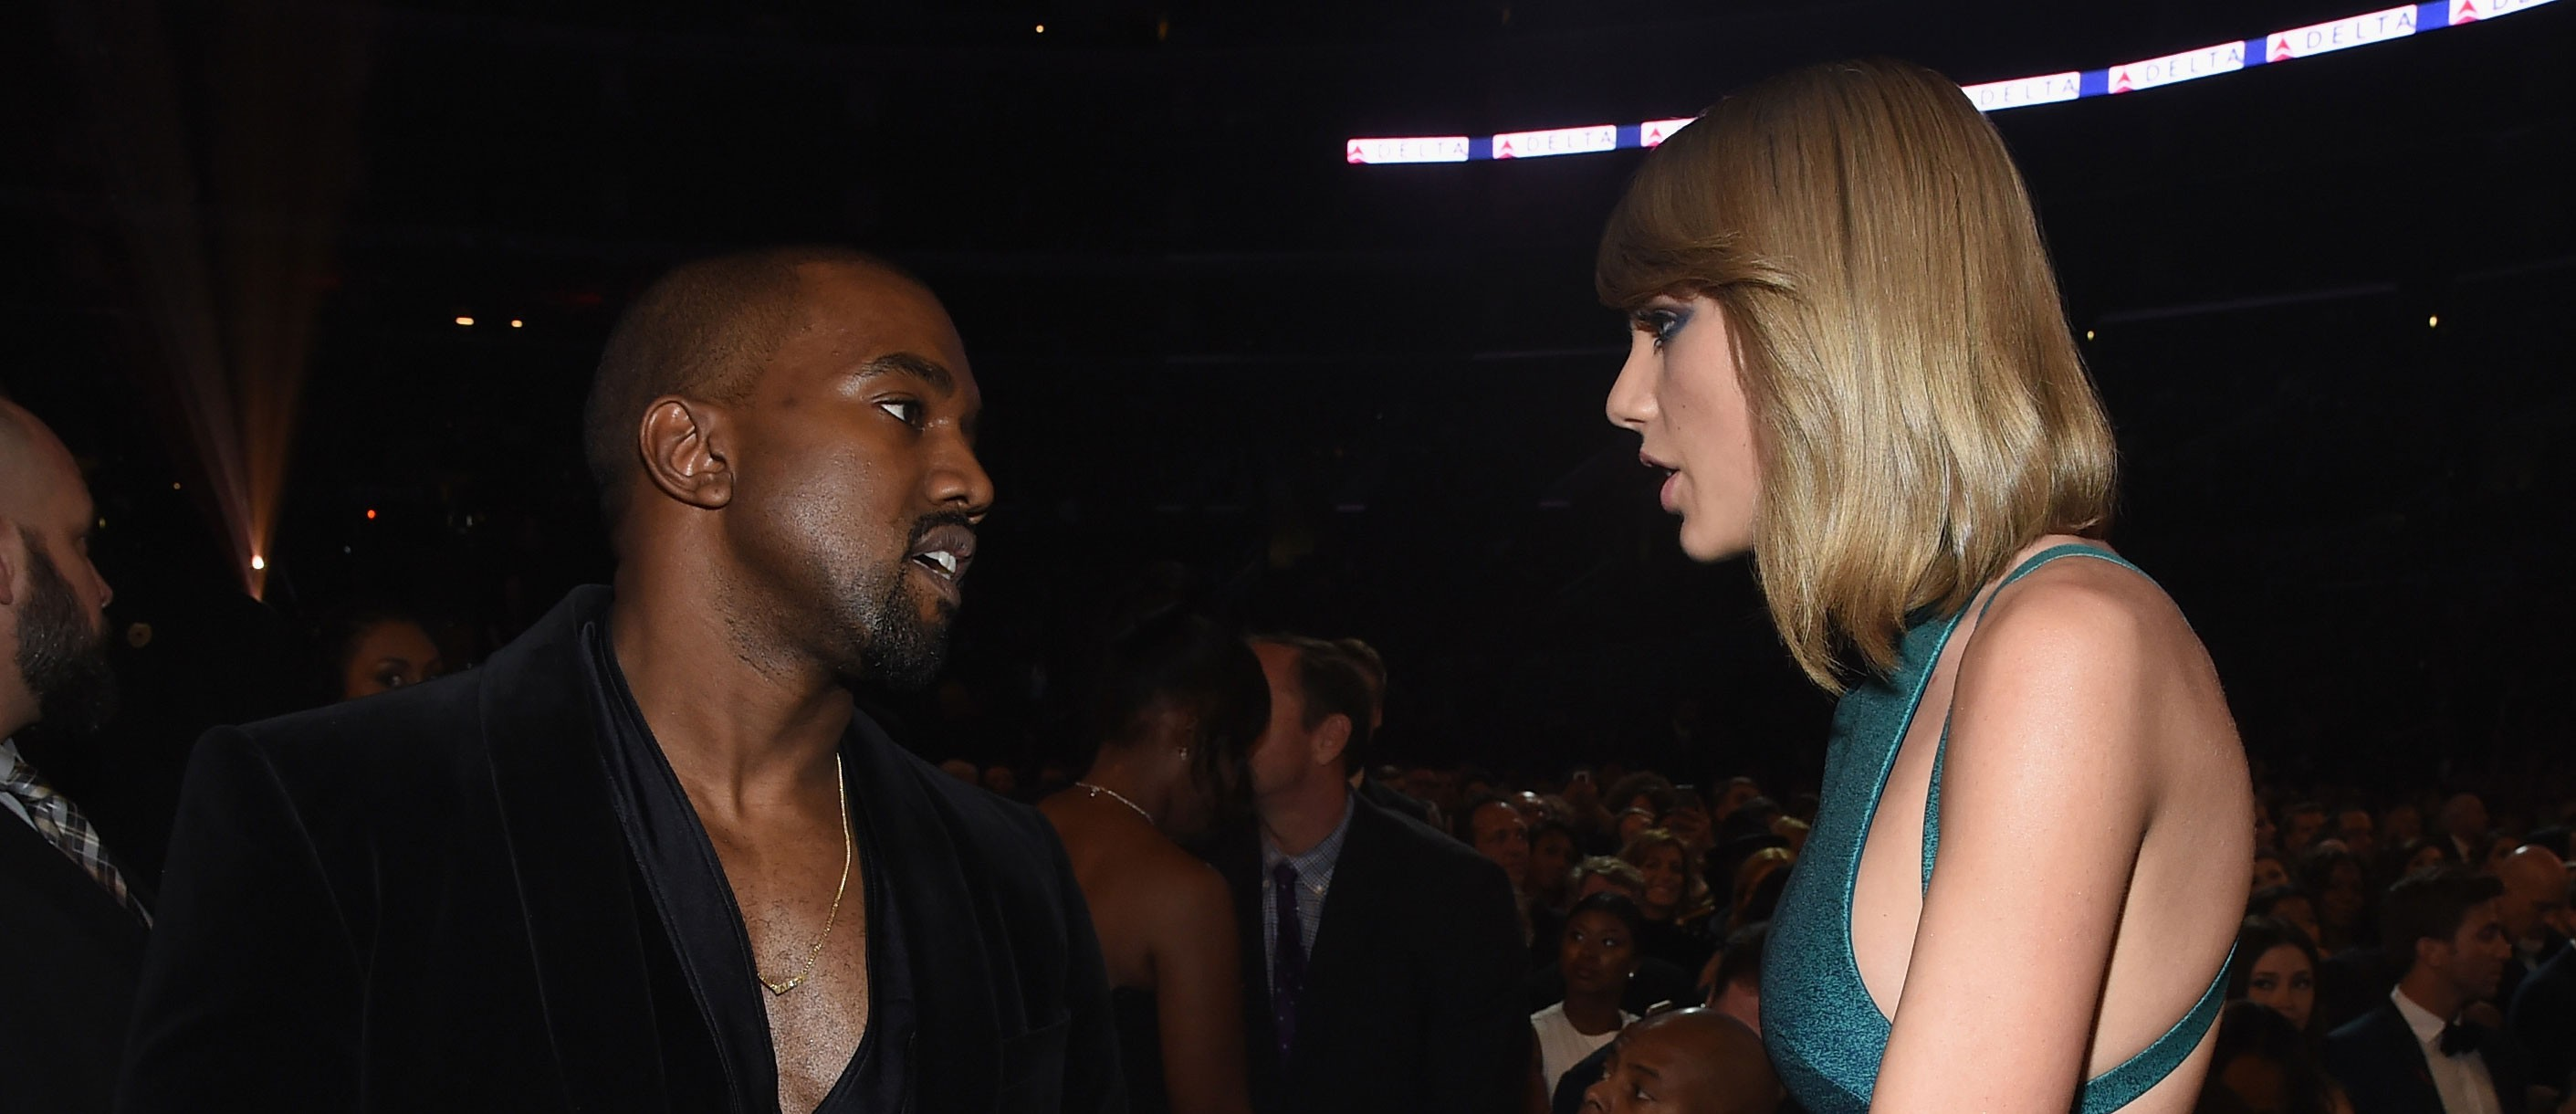 Taylor Swift May Have Won But So Did Kanye S Album Sales